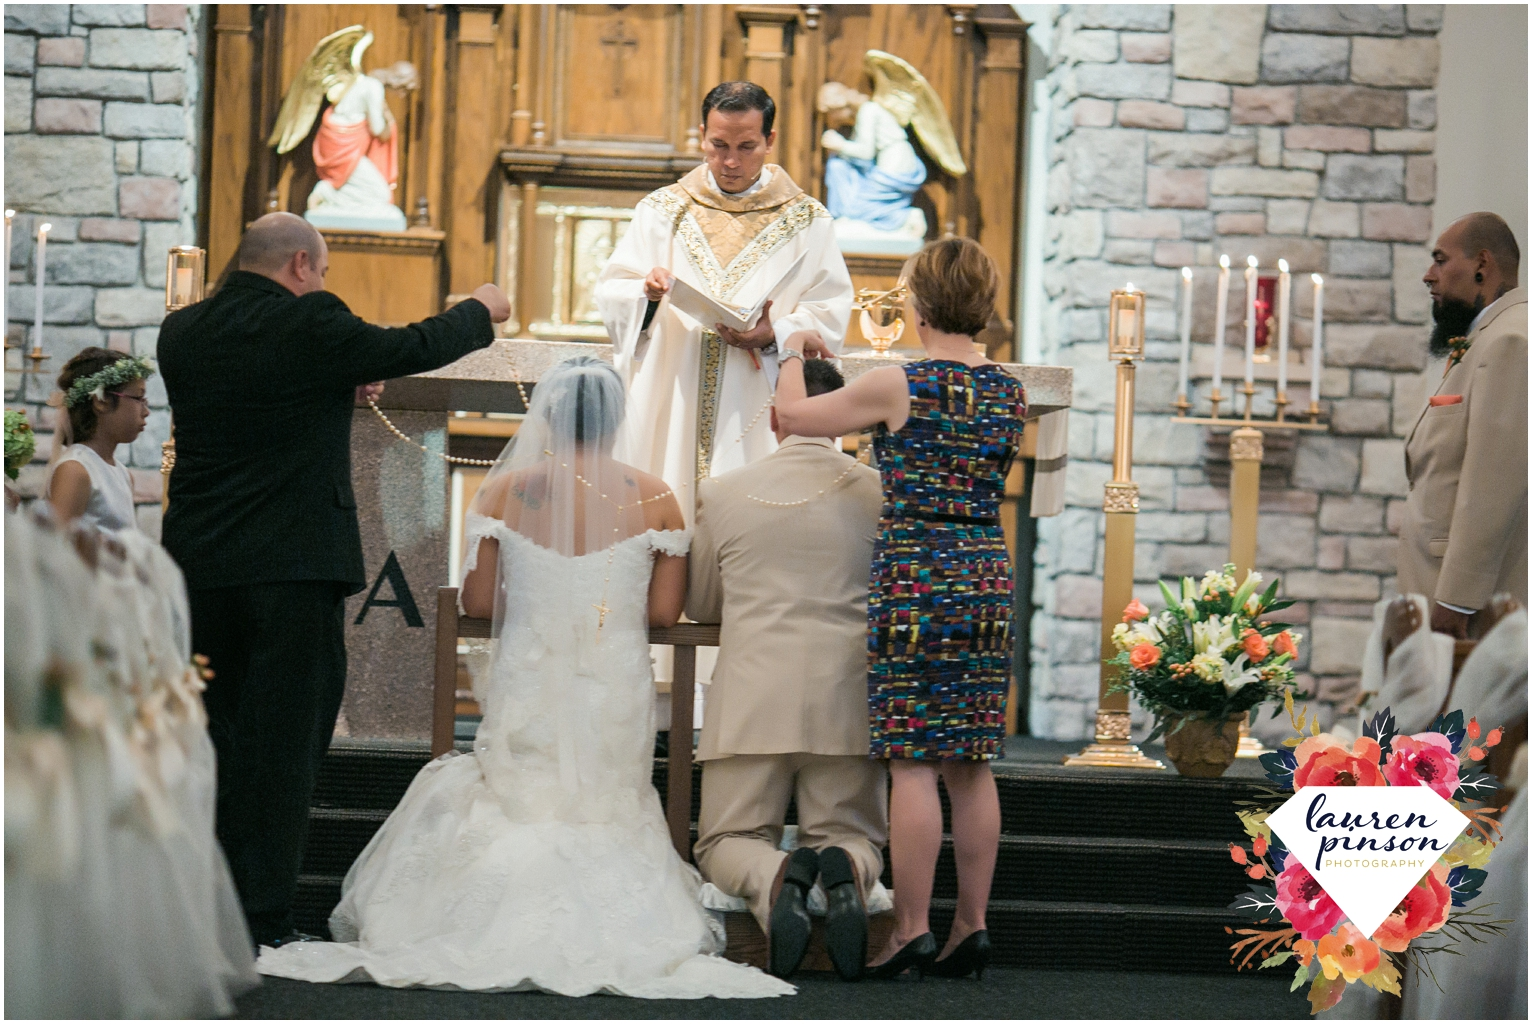 wichita-falls-wedding-photographer-OUR-Lady-queen-of-peace-catholic-wedding-the-forum-photography_0821.jpg